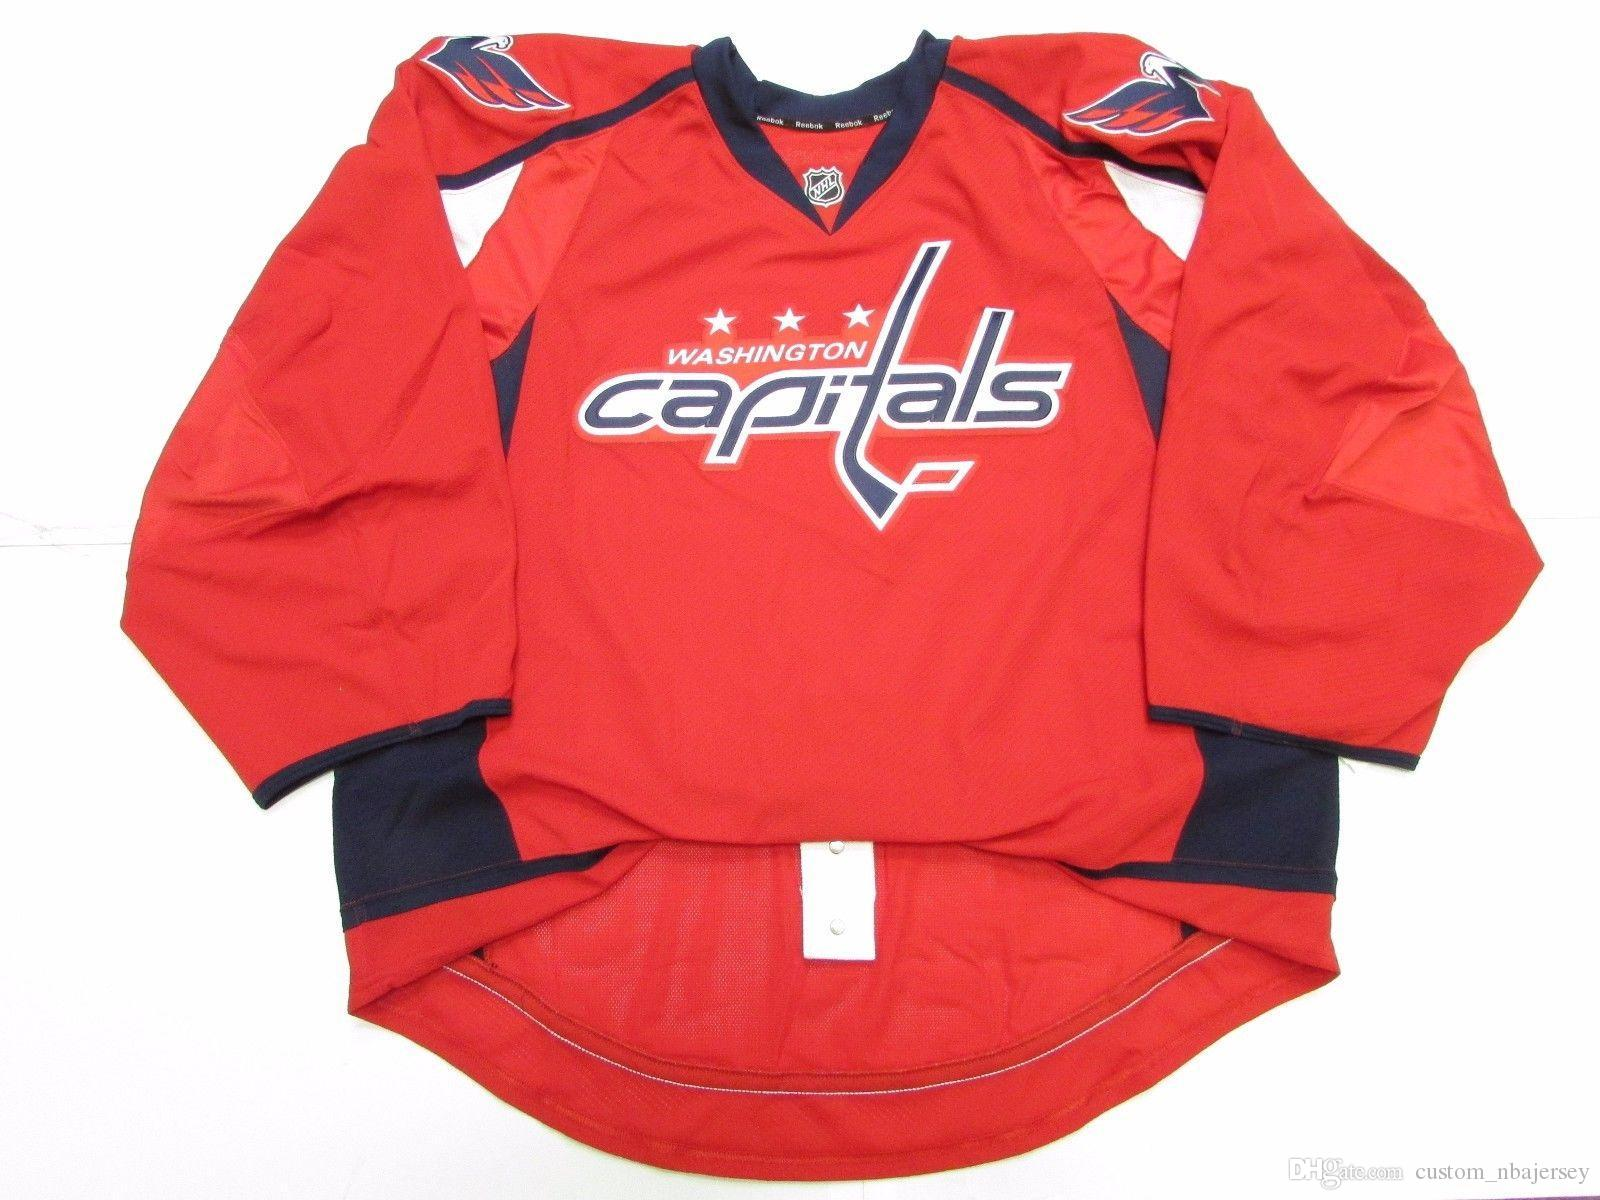 726b17a6060 2019 Cheap Custom WASHINGTON CAPITALS HOME JERSEY GOALIE CUT 60 Stitch Add  Any Number Any Name Mens Hockey Jersey From Custom_nbajersey, $36.93 |  DHgate.Com